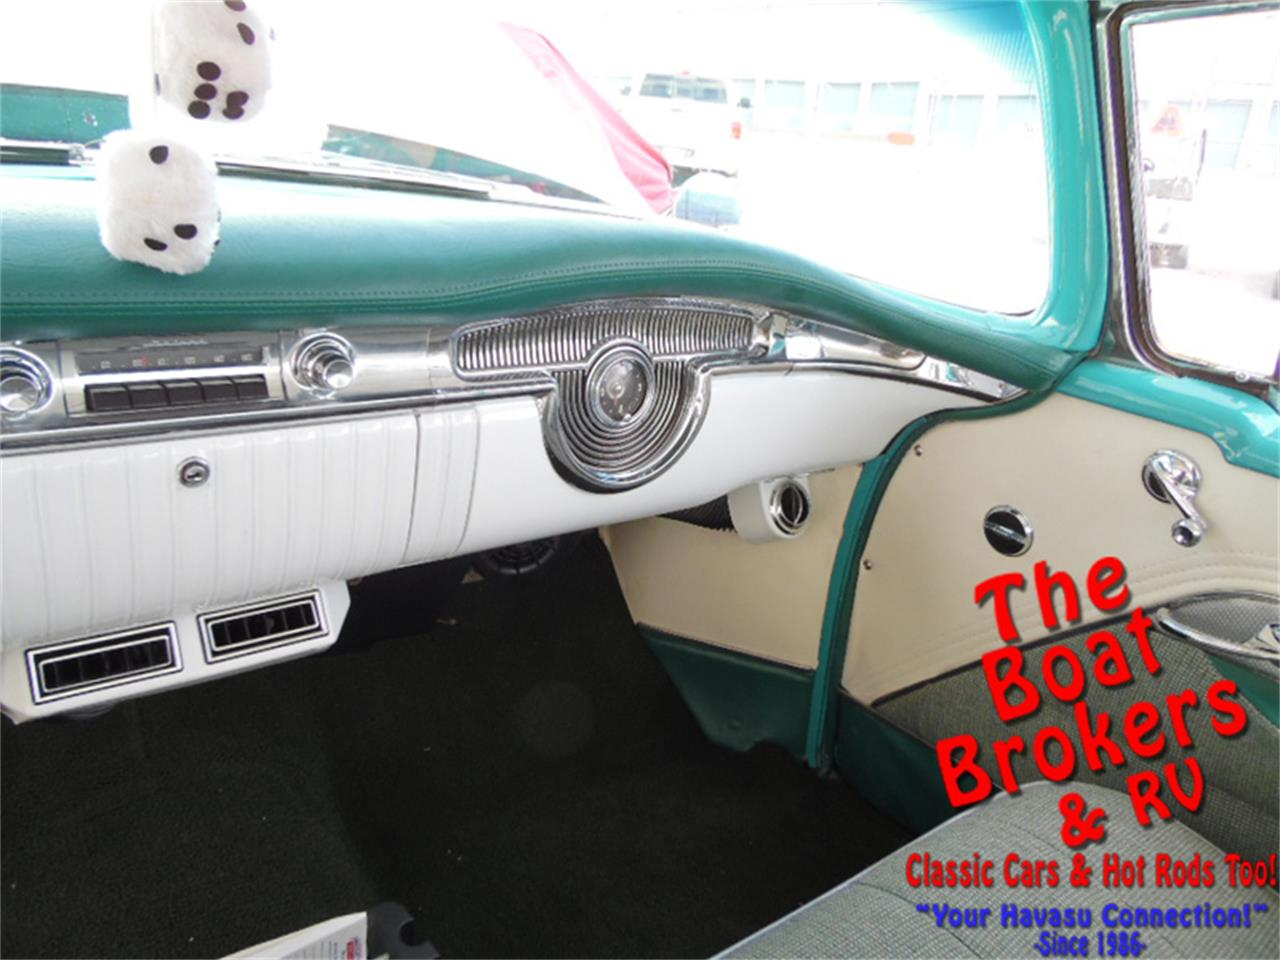 Large Picture of Classic '55 Oldsmobile Holiday Rocket 88 located in Lake Havasu Arizona - $31,000.00 Offered by The Boat Brokers - N2PY